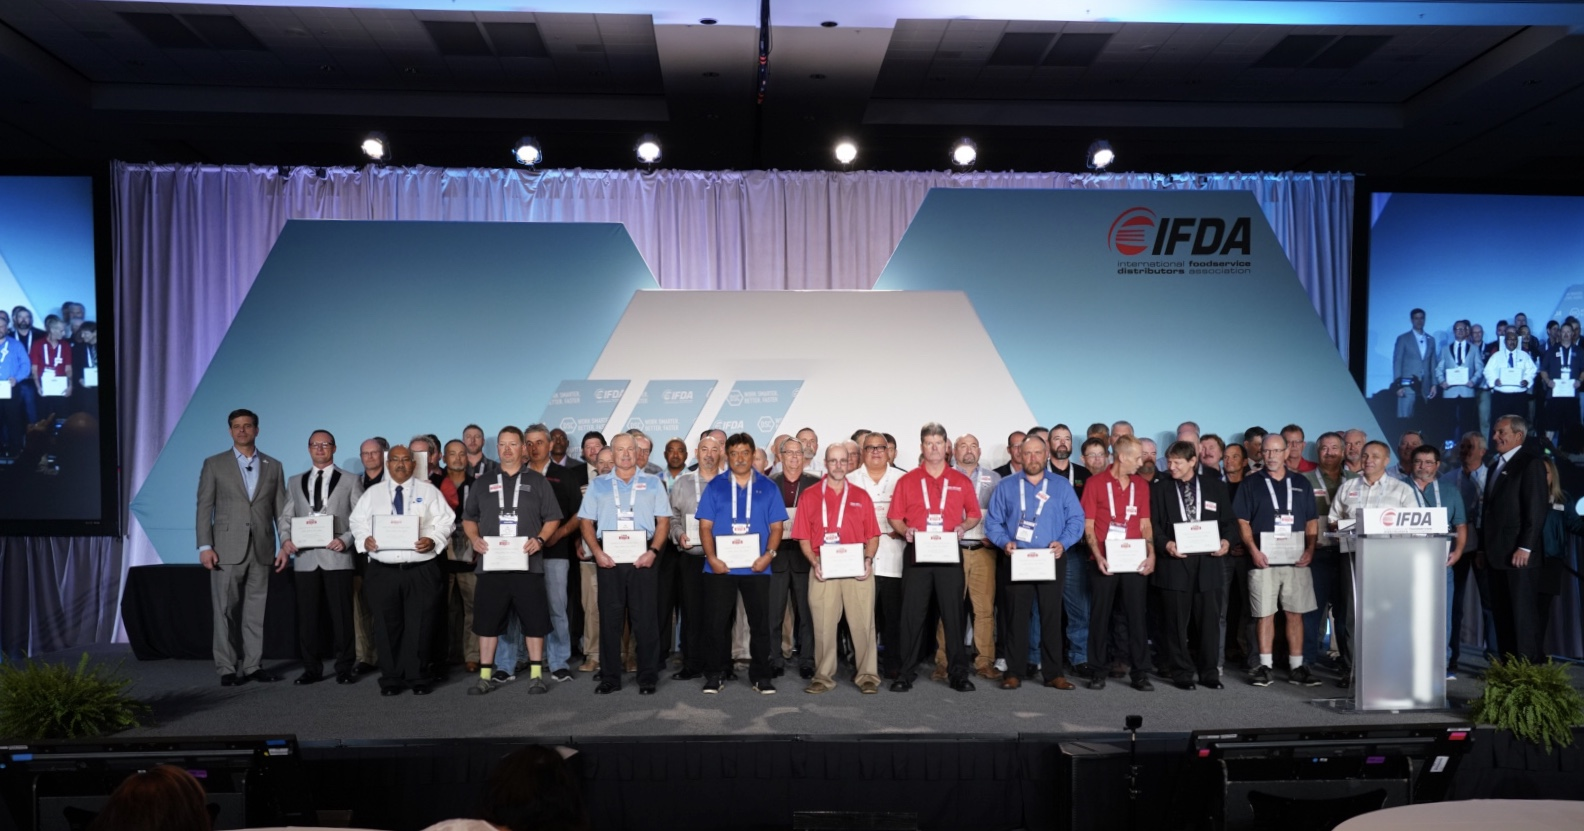 IFDA Celebrates the 2019 Truck Driver Hall of Fame Inductees